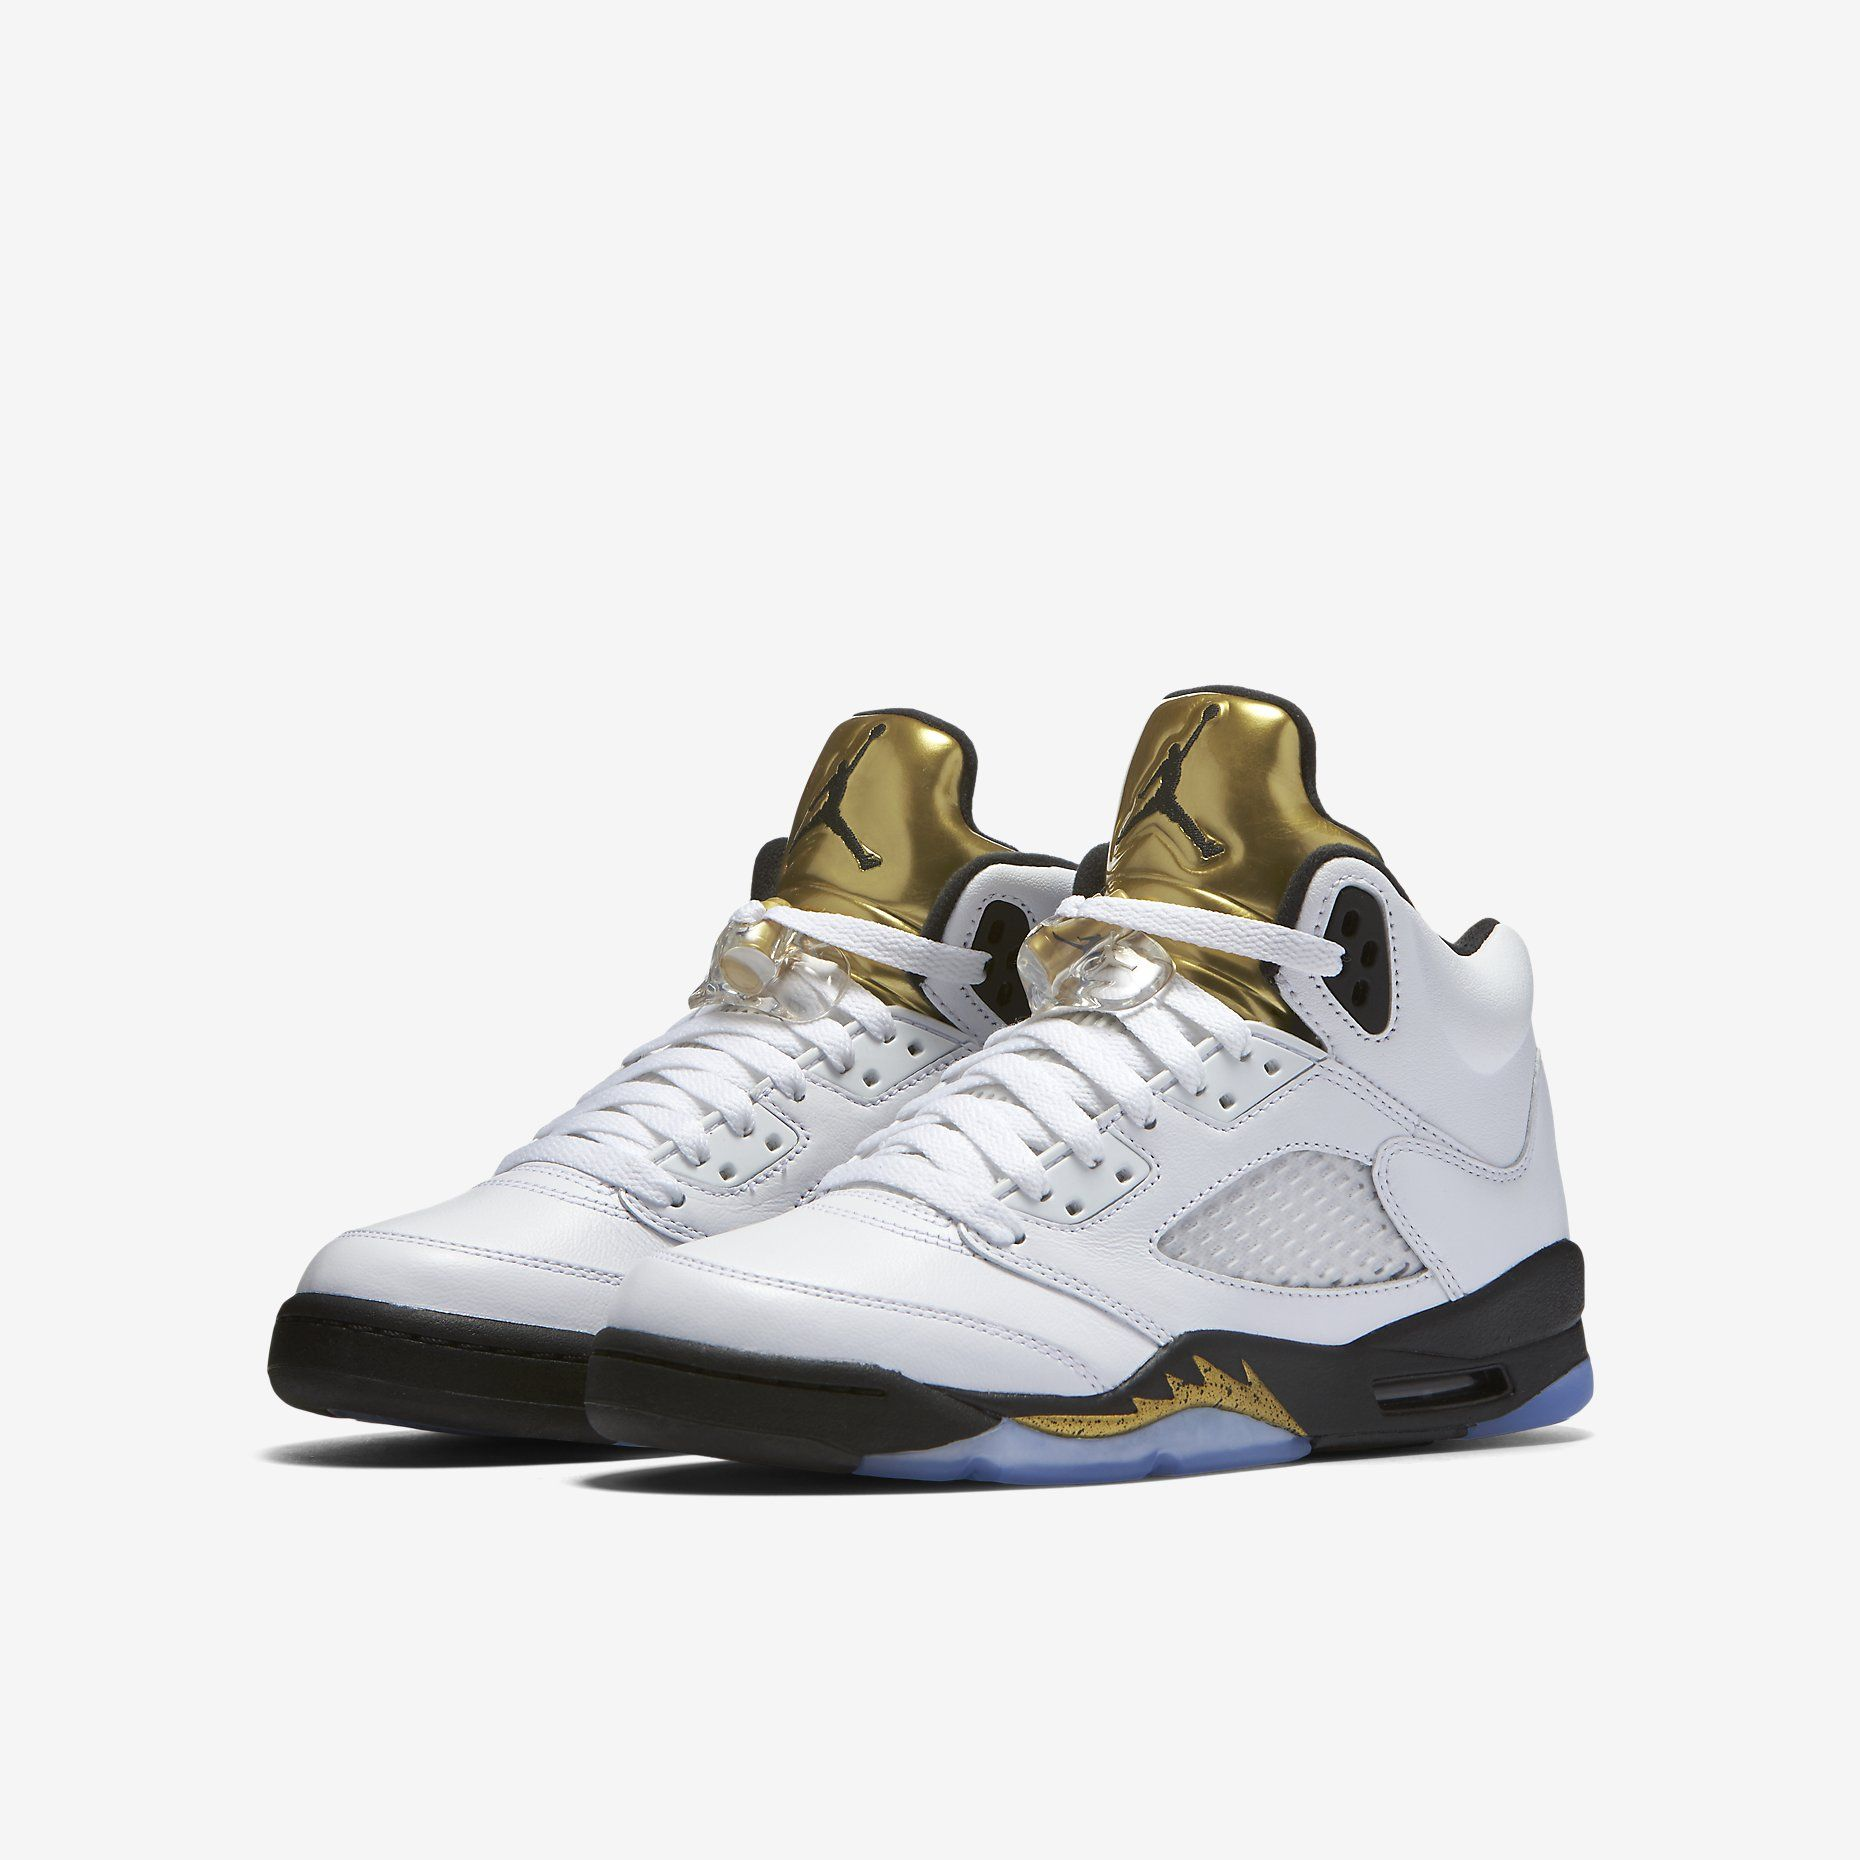 hot sale online e1ff3 f2f97 Air Jordan 5 Retro - White Metallic Gold Coin Black